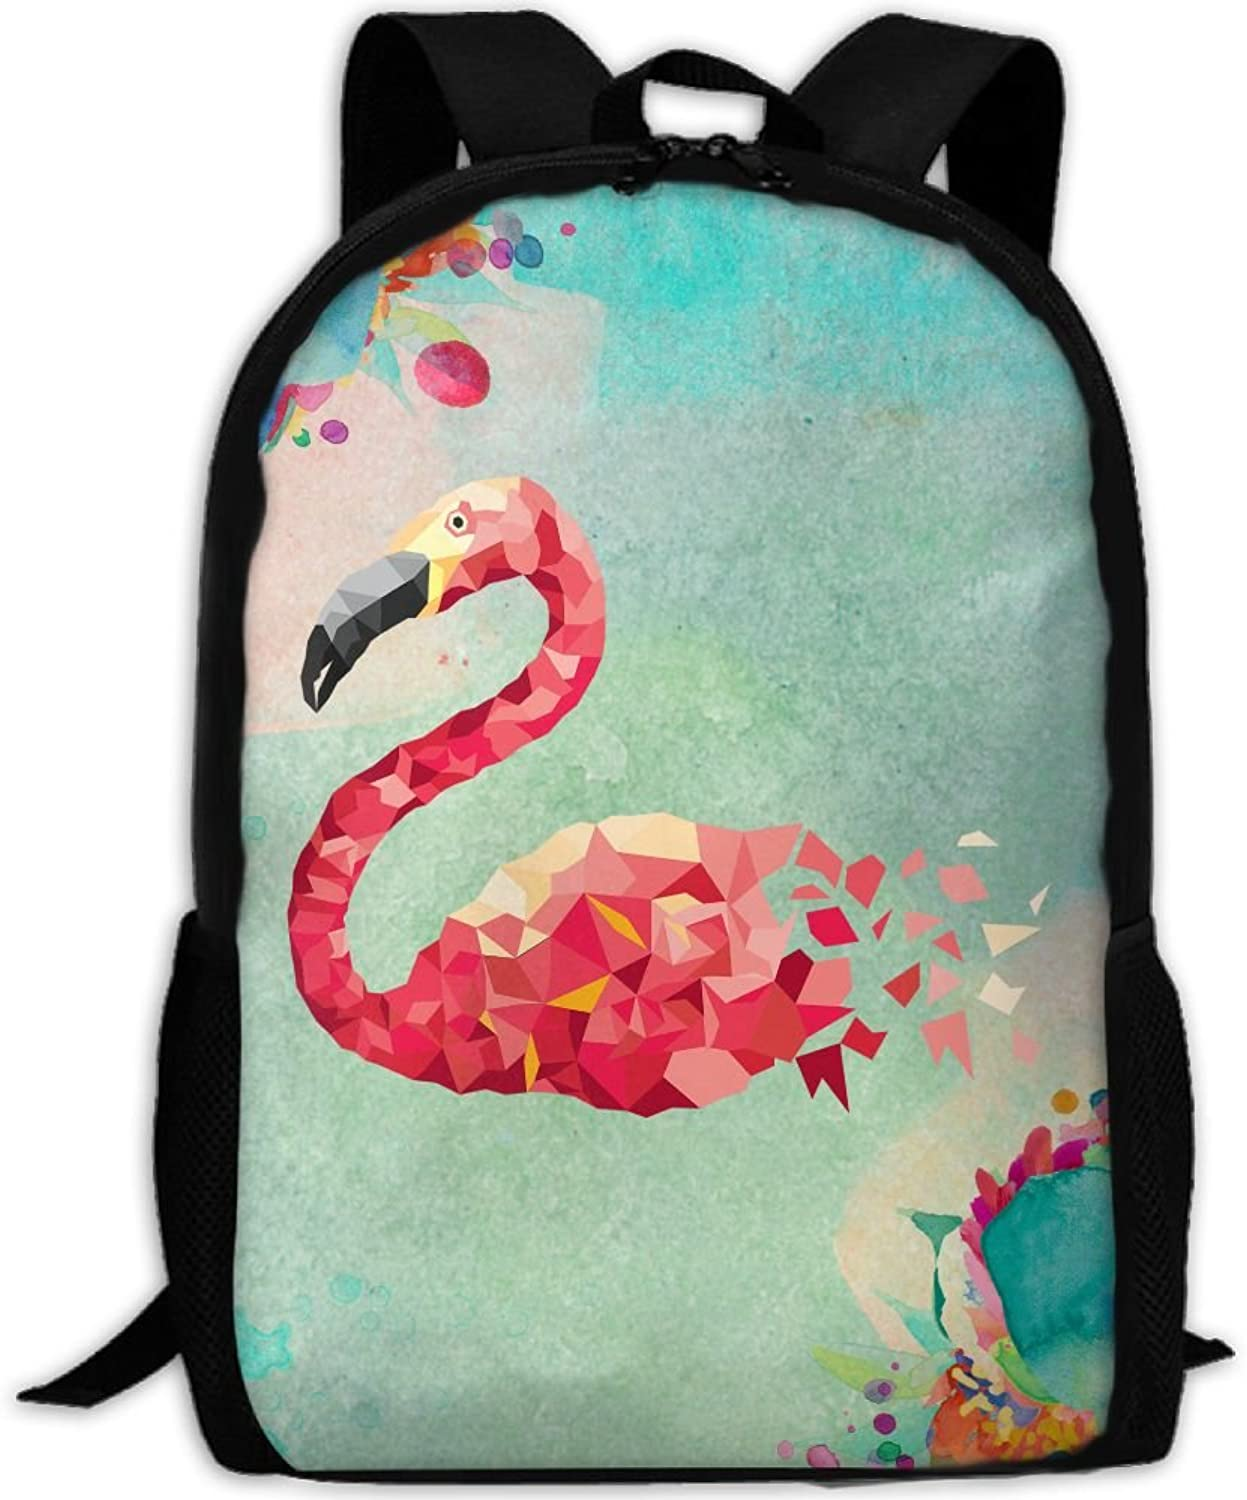 Adult Backpack Flamingo Puzzles College Daypack Oxford Bag Unisex Business Travel Sports Bag with Adjustable Strap